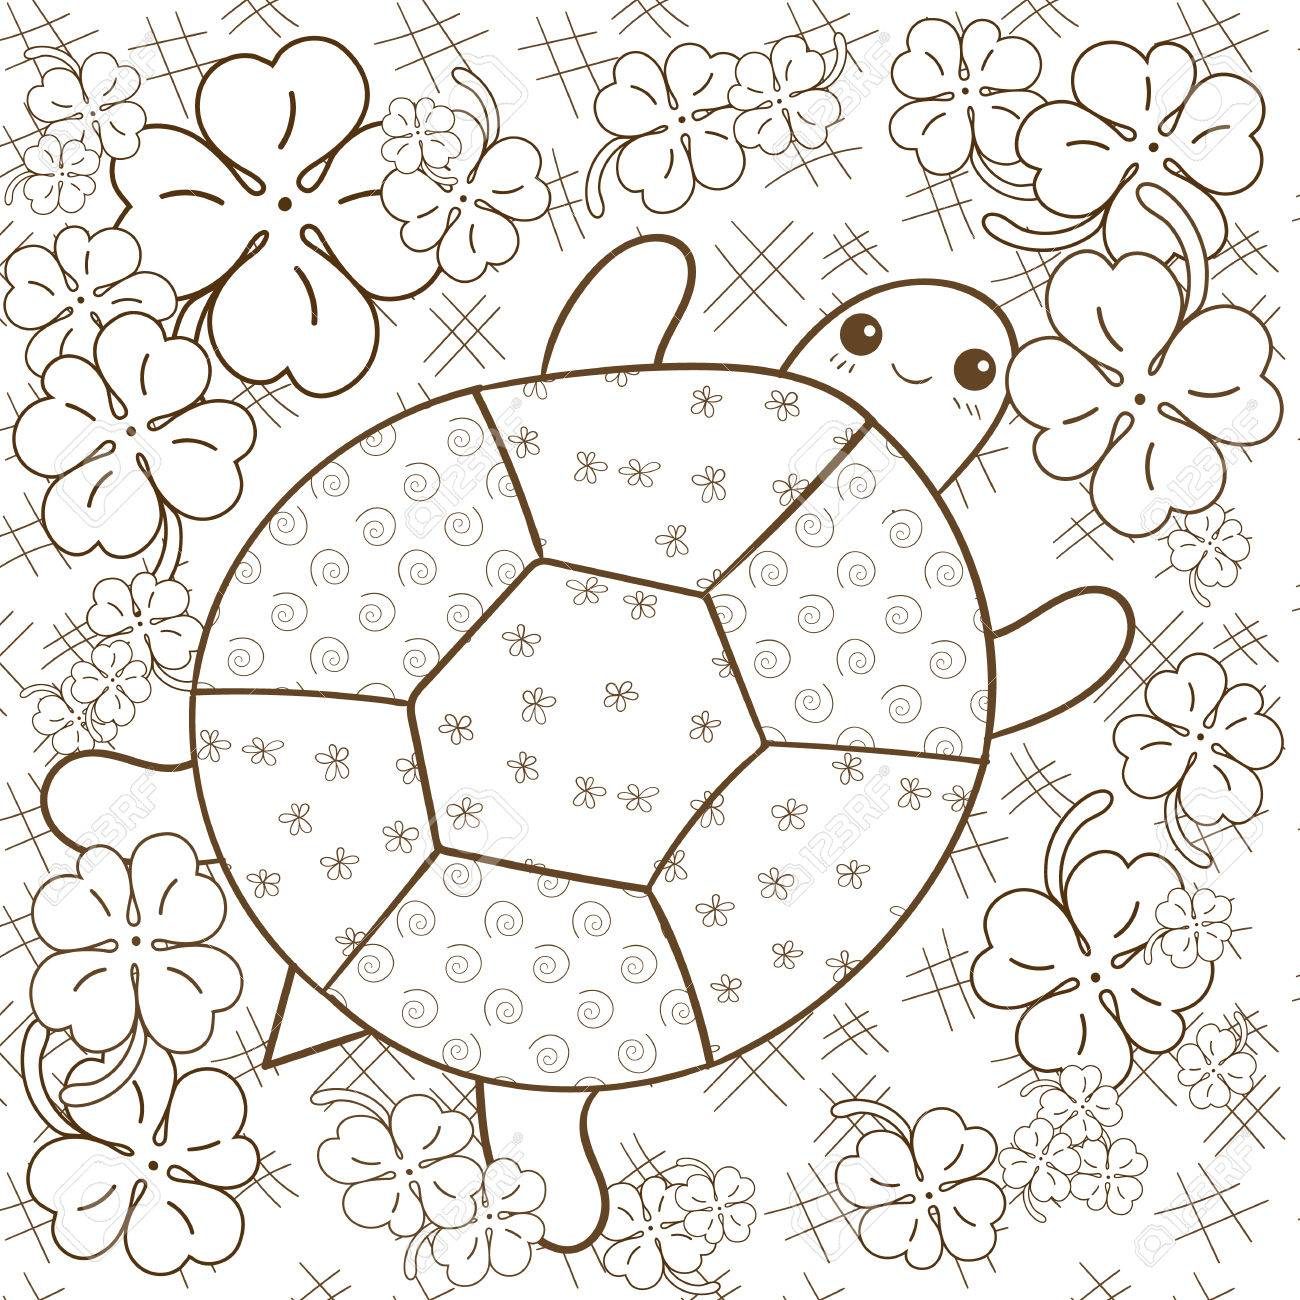 Whimsical designs coloring book - Turtle Heaven Adult Coloring Book Page Cute Turtle In Clover Garden Whimsical Line Art